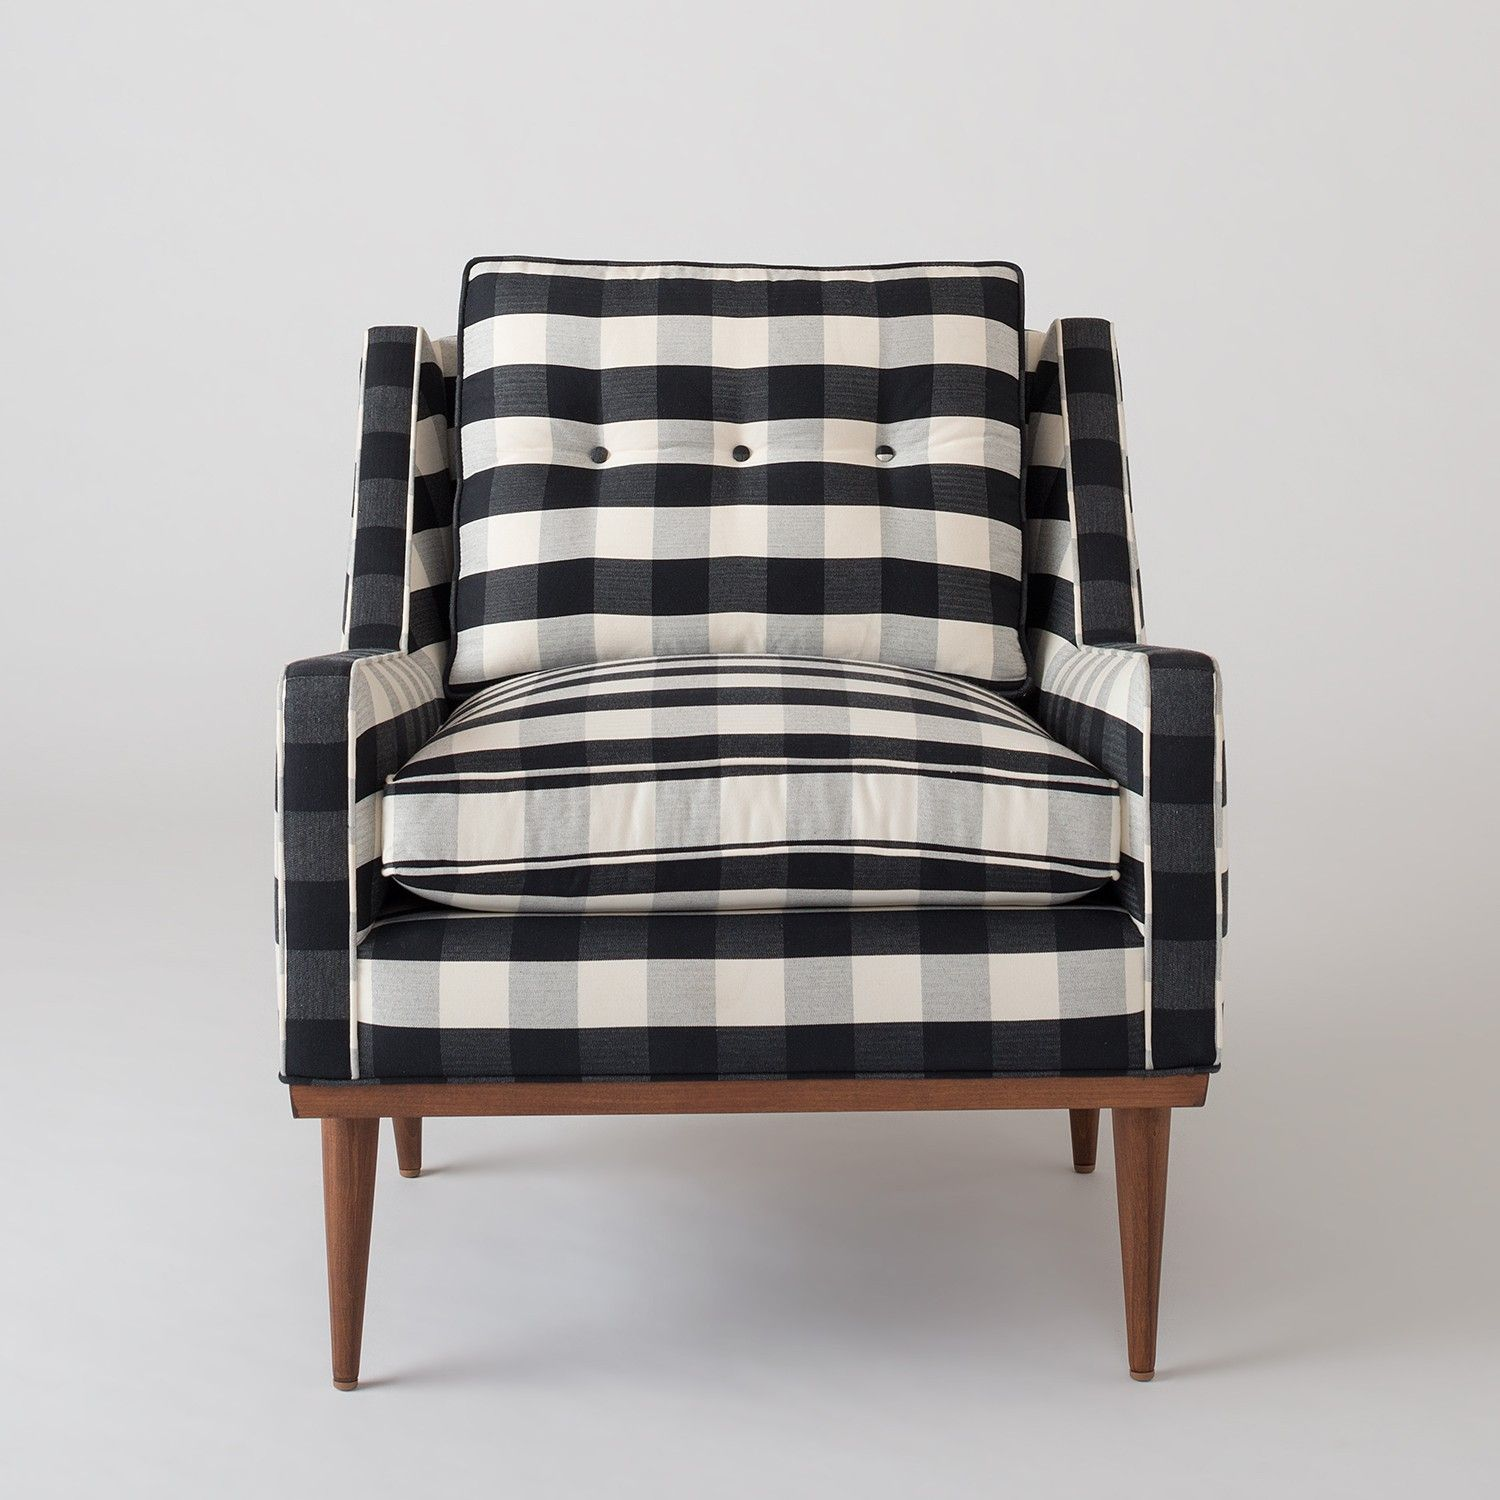 Gingham Dining Room Chair Covers Folding With Umbrella Holder Jack Windowpane Plaid Interior Pinterest